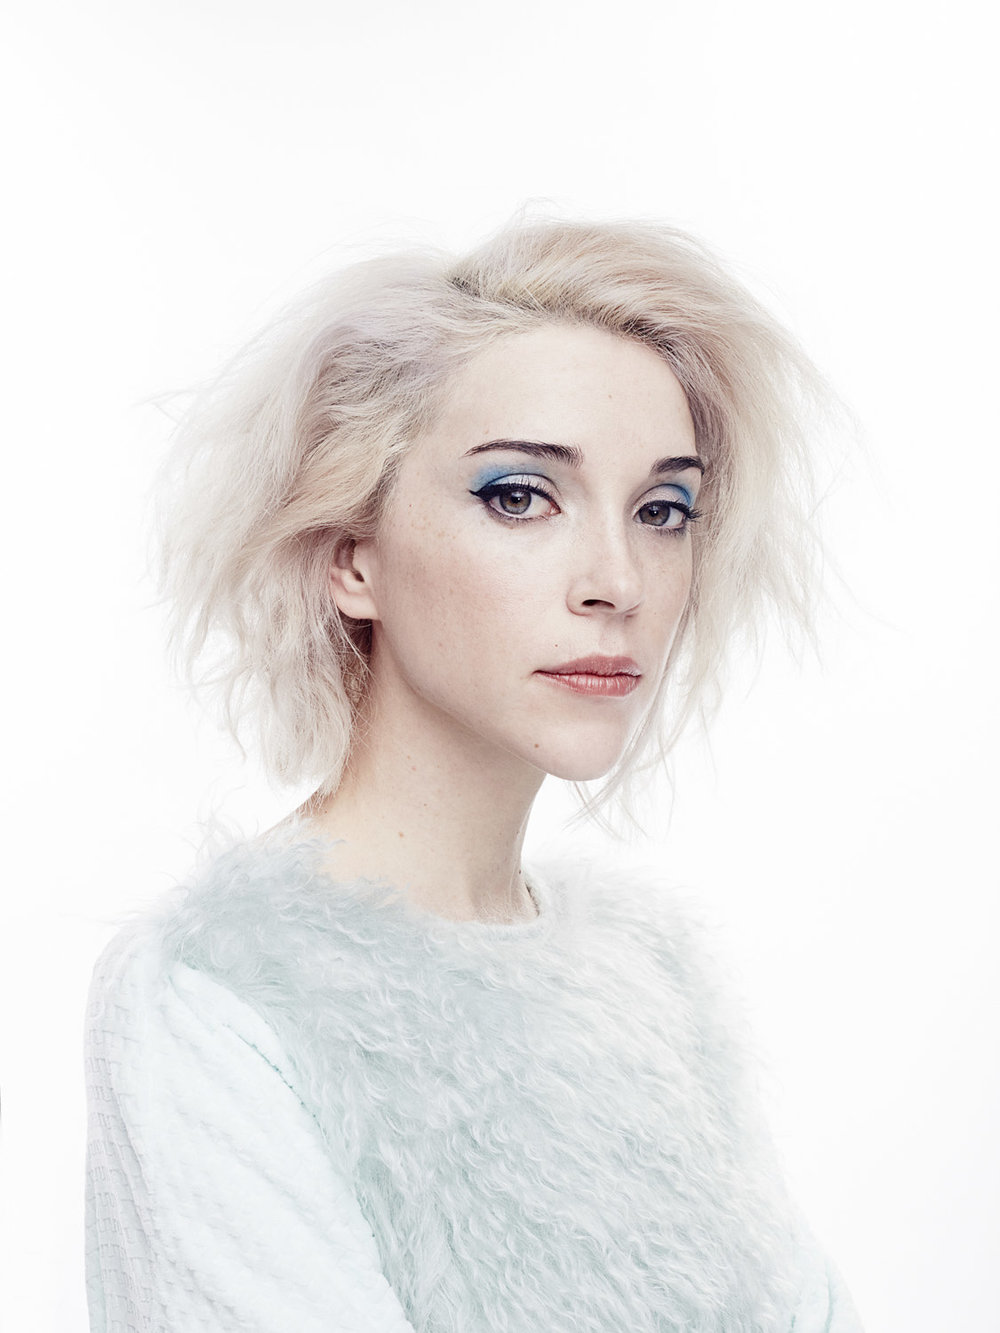 St. Vincent/Brooklyn Magazine